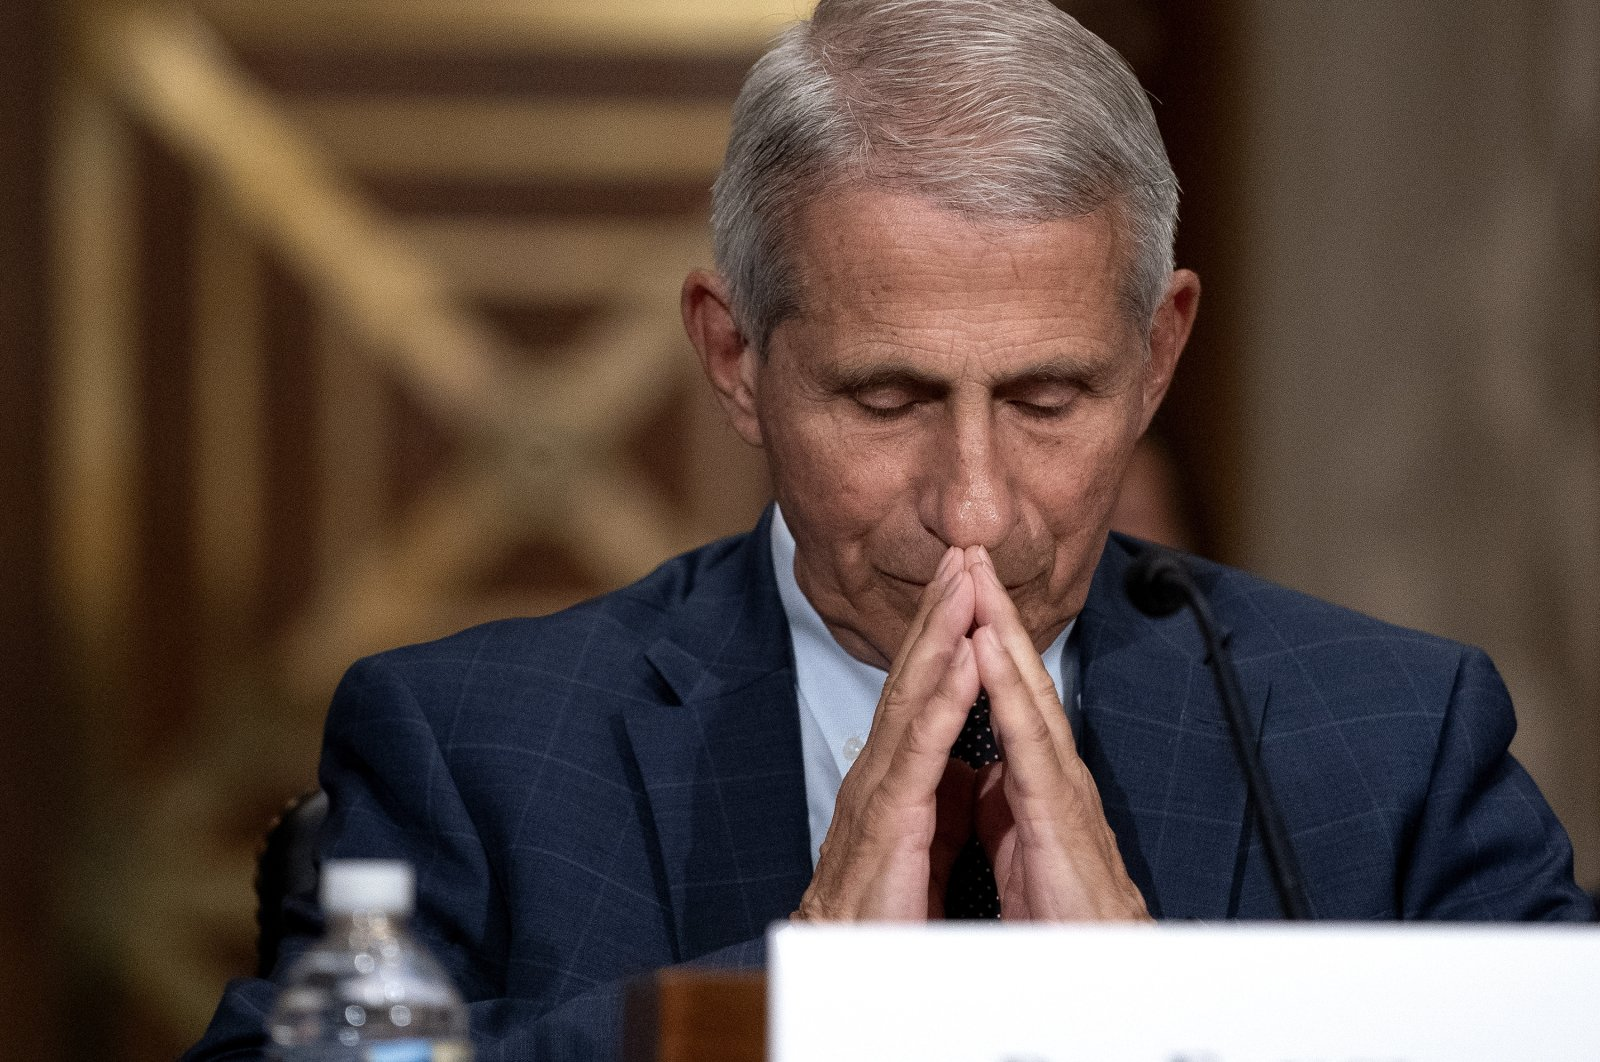 Anthony Fauci, director of the National Institute of Allergy and Infectious Diseases, during a Senate Health, Education, Labor, and Pensions Committee hearing at the Dirksen Senate Office Building in Washington, D.C., U.S., July 20, 2021. (EPA Photo)